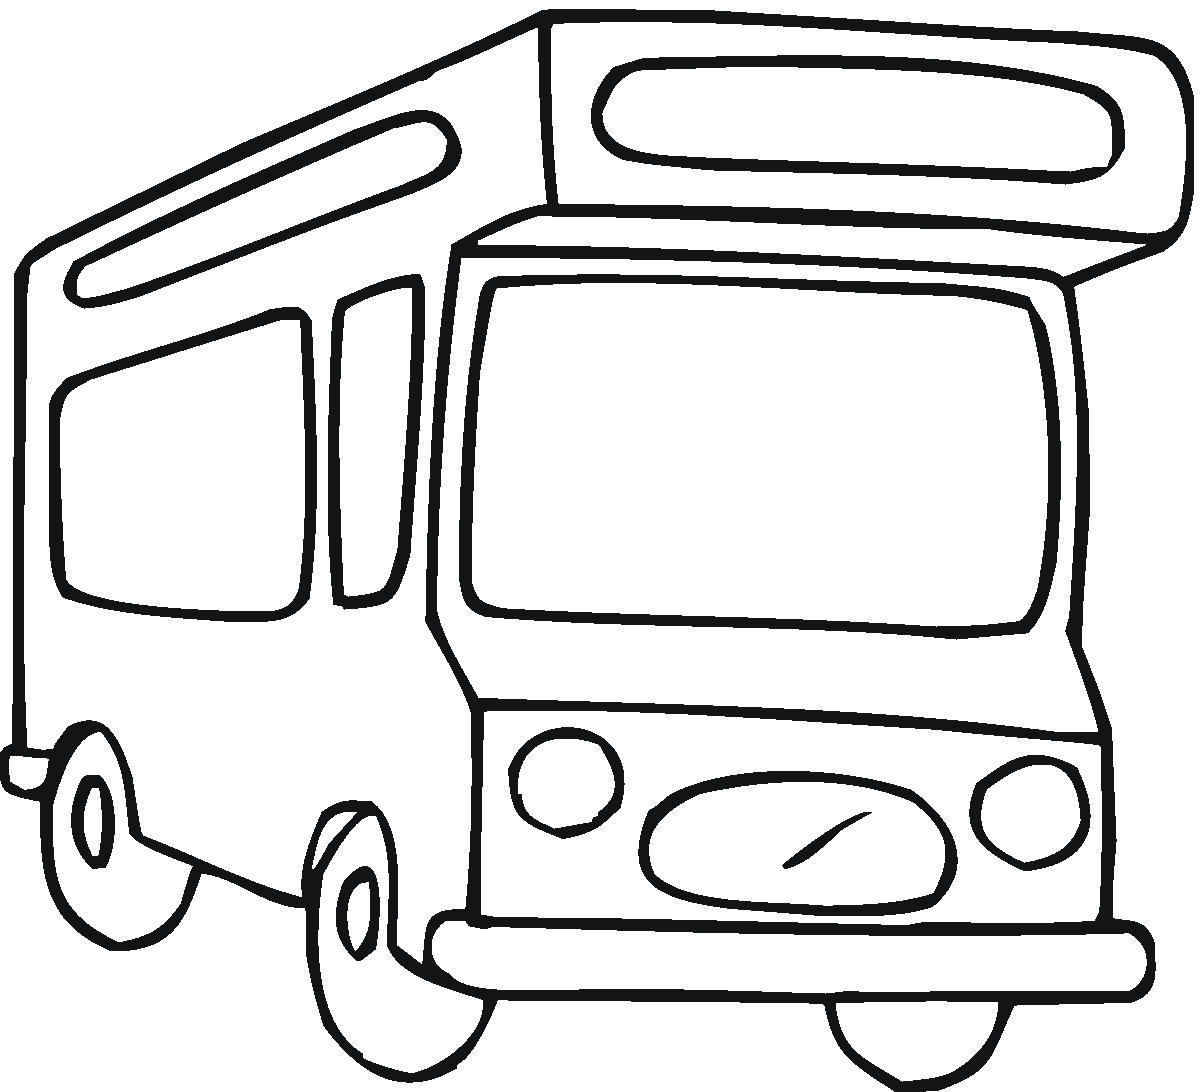 Magic school bus coloring pictures - School 20bus 20coloring 20page